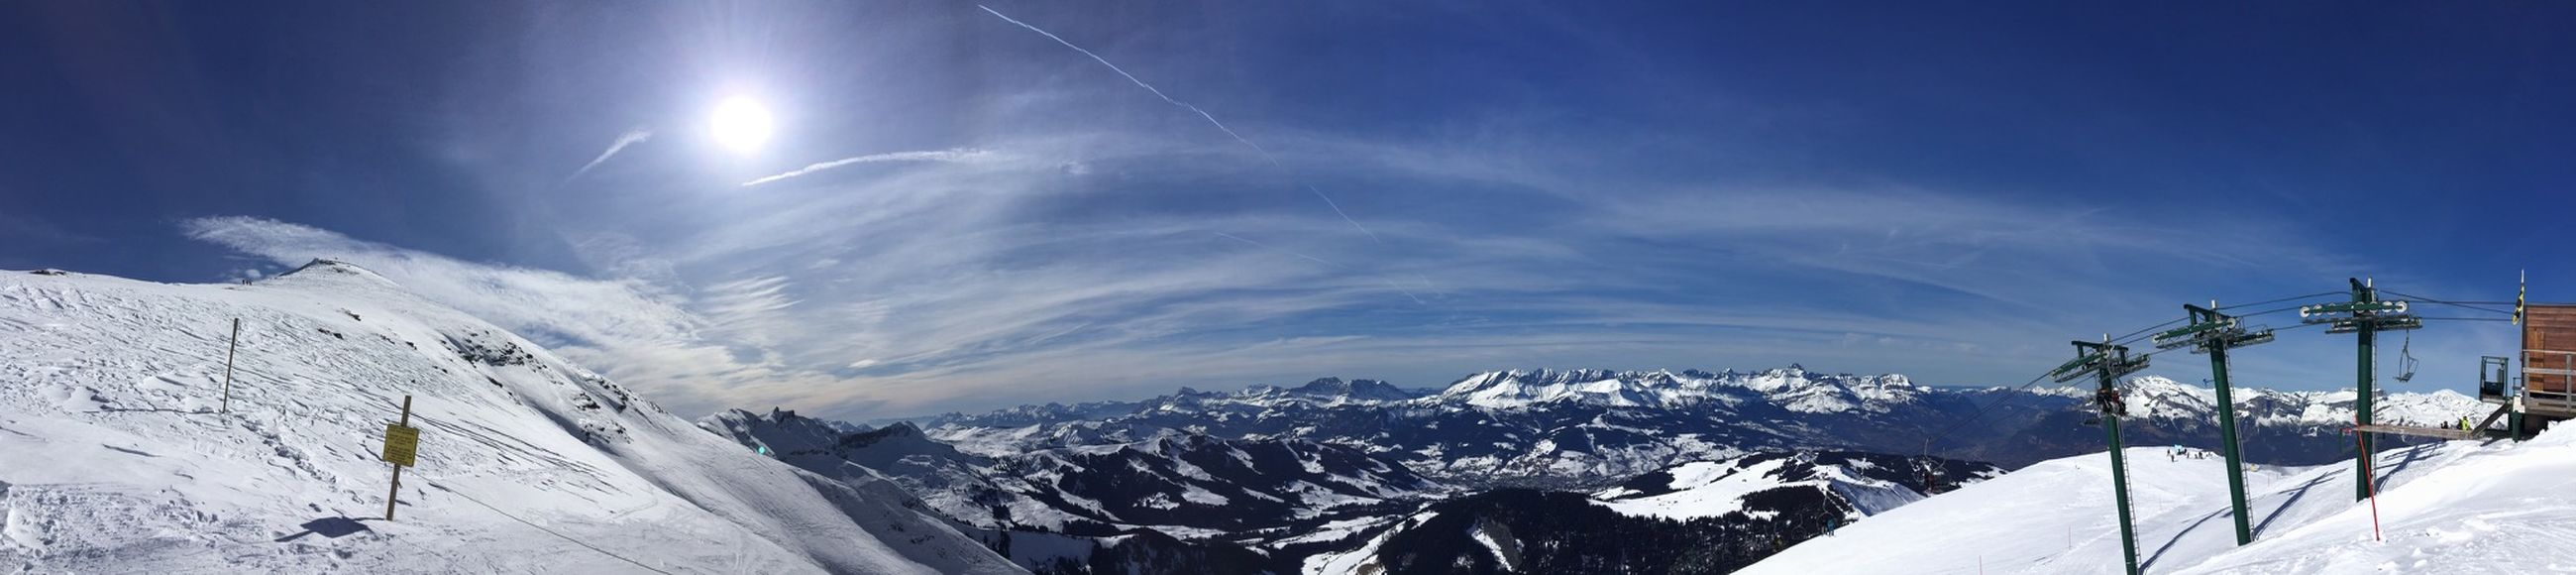 En direct .... Panorama Saint Gervais Skiing Mont Joly Enjoying Life Mountain View Nofilter